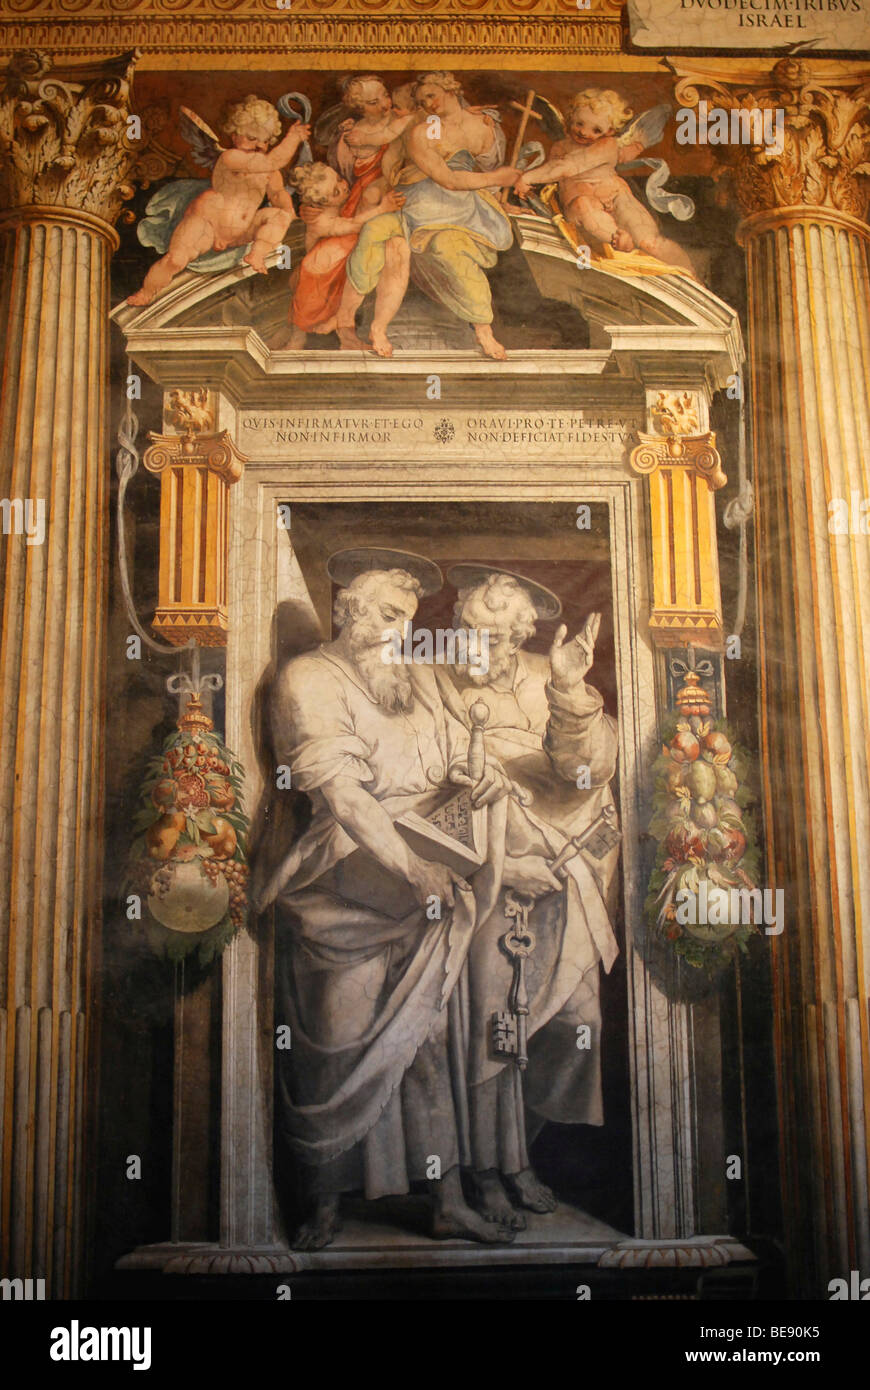 Detail, painting, chiaroscuro room, Vatican chambers, Vatican Museums, Old Town, Vatican City, Italy, Europe - Stock Image